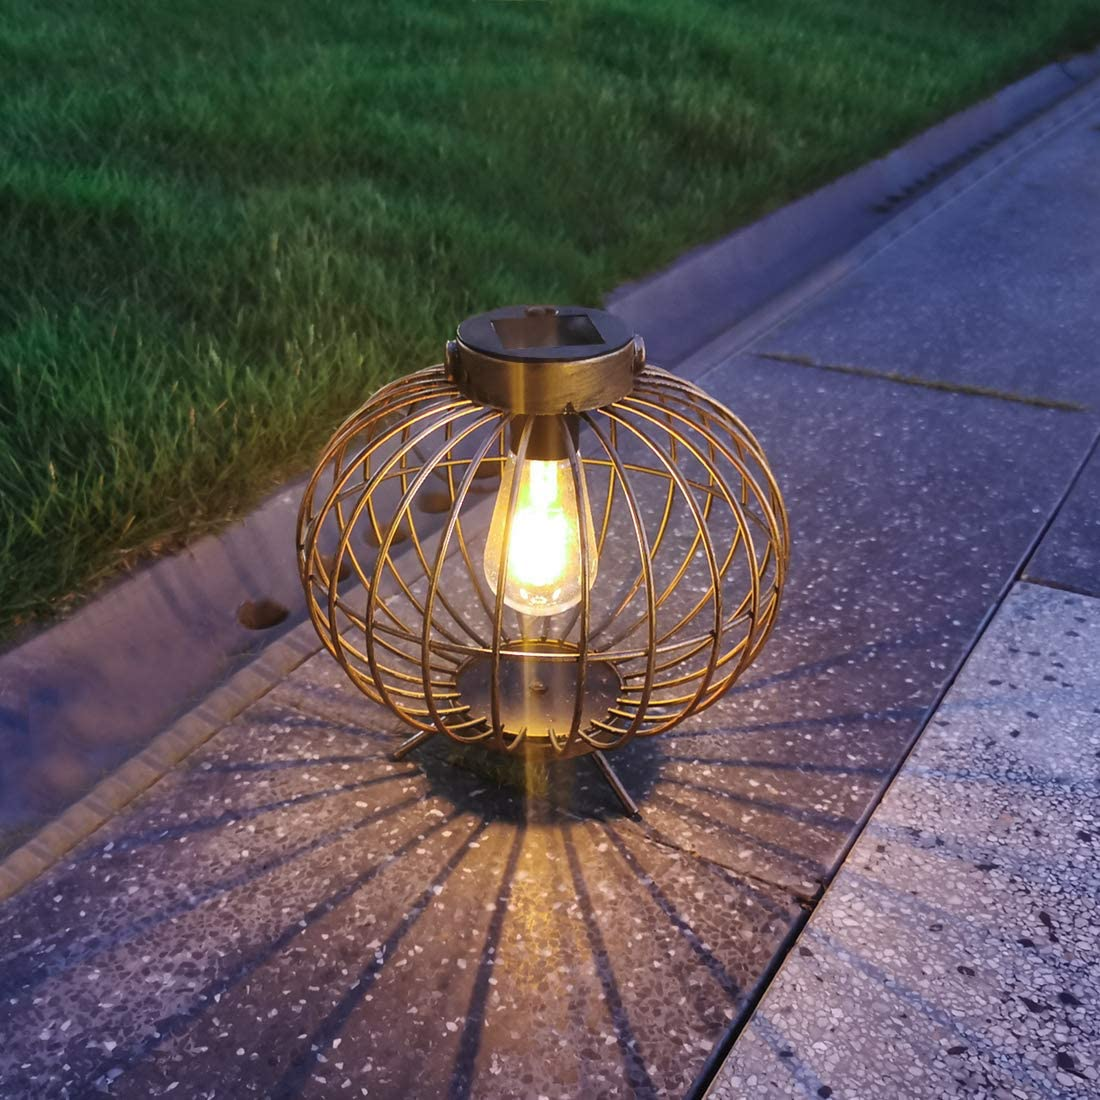 Solar Lantern Outdoor, pearlstar Metal Solar Light with Base Waterproof for Garden Yard Patio Pathway Decoration – 8 Solar Table Lamp – Hanging Solar Light Copper